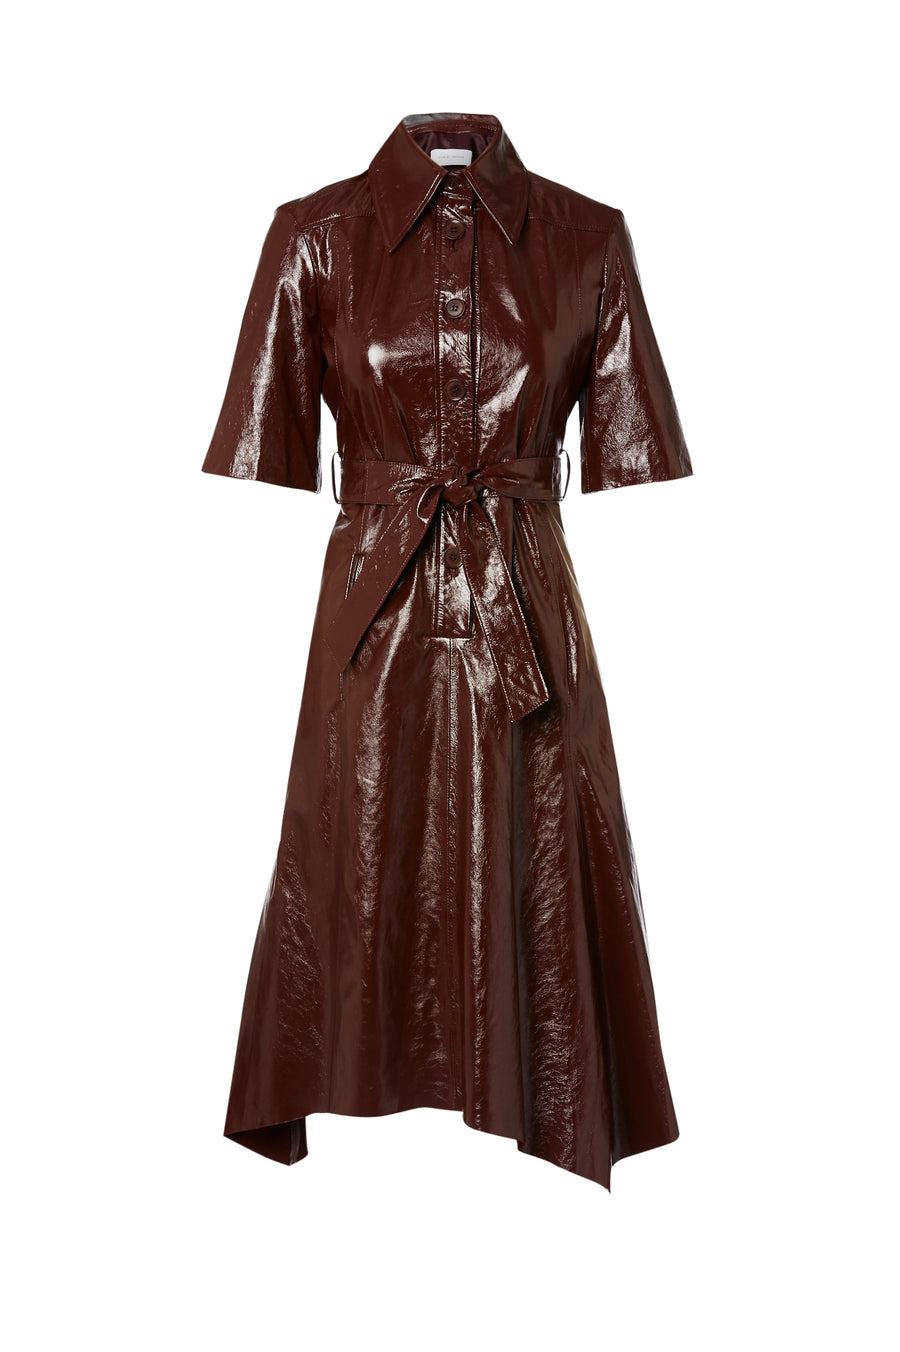 Leather Dress, 100% leather, loose fit ,includes a belt, has a collar, short sleeves and button fastenings through the front, Color Cocoa